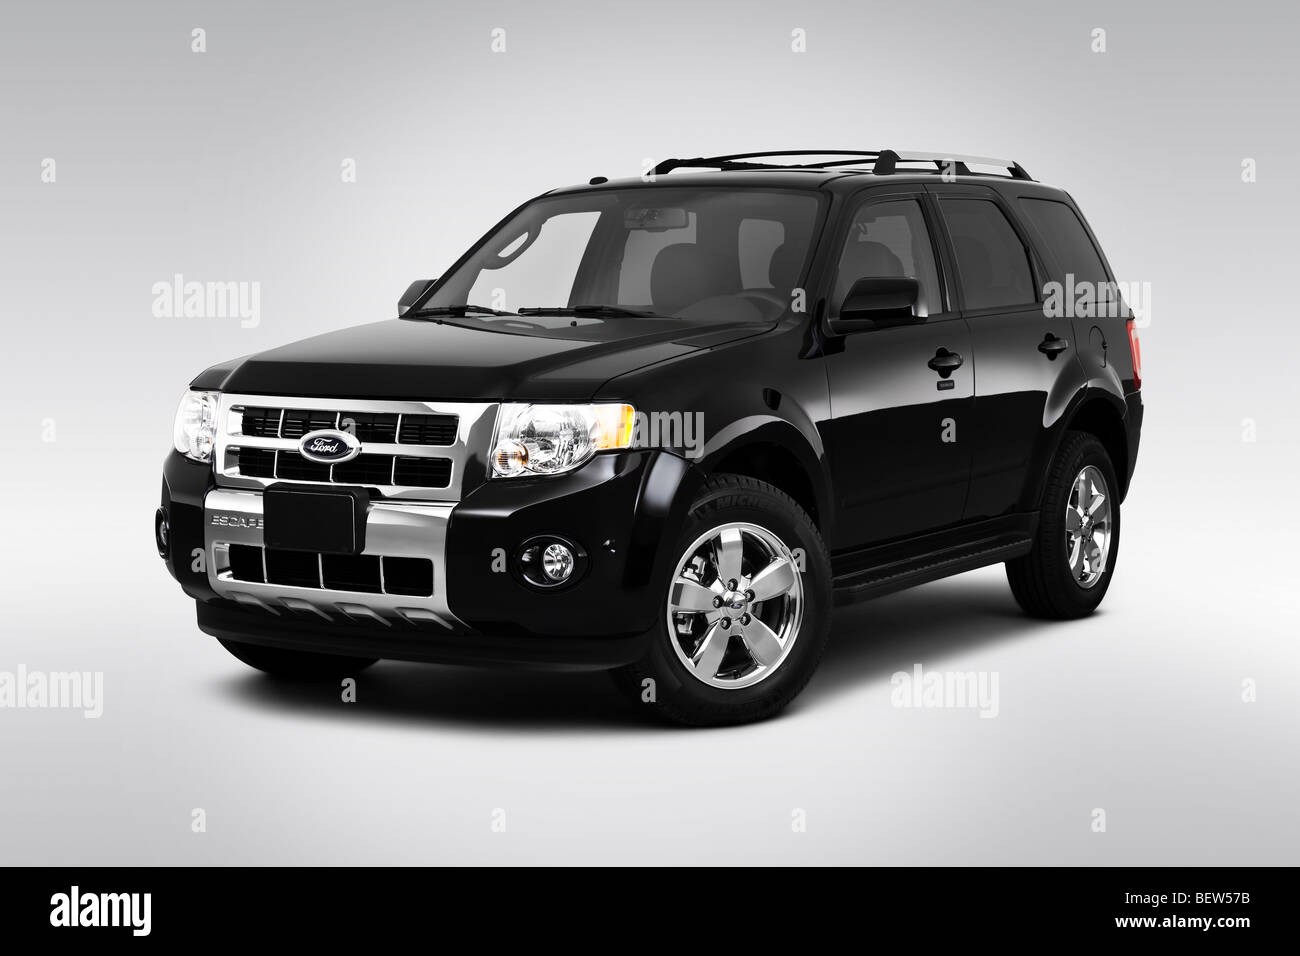 2010 ford escape limited in black front angle view stock photo 26368479 alamy. Black Bedroom Furniture Sets. Home Design Ideas